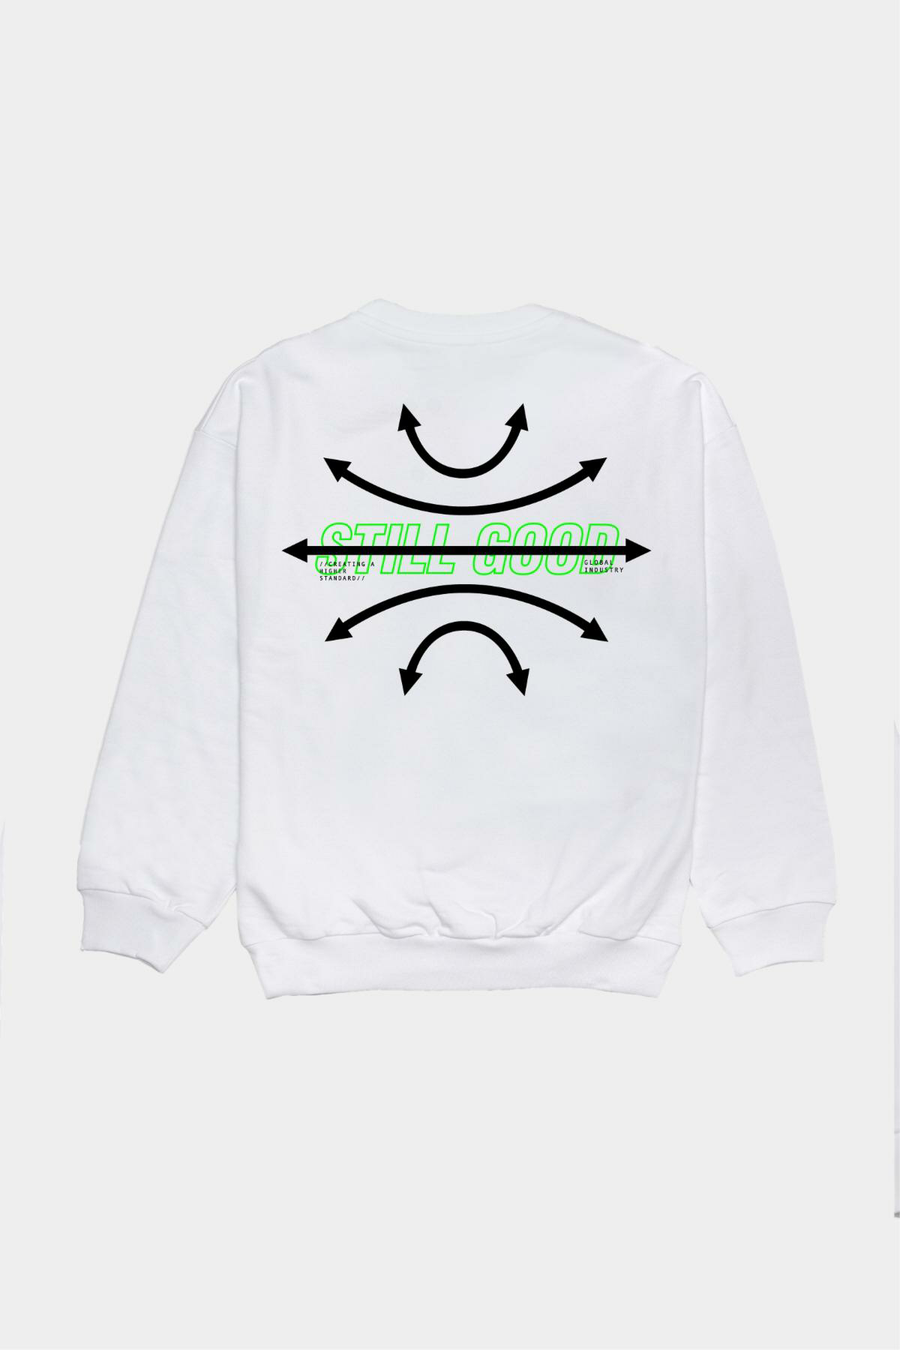 Global V2 Crewneck | Still Good